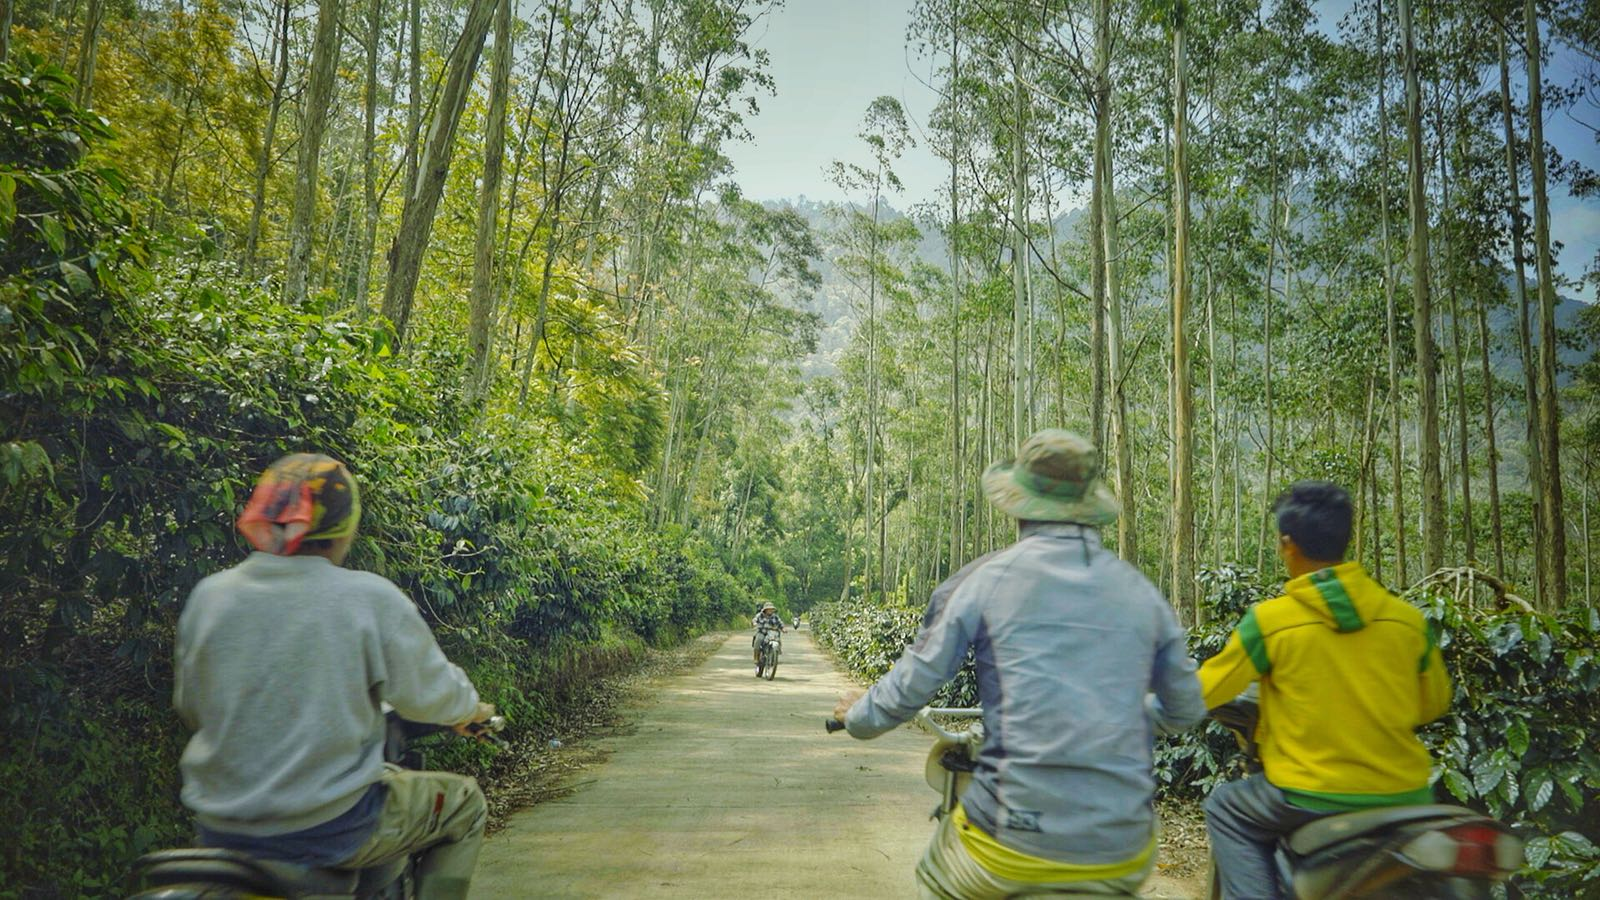 Our farm is high in elevation and requires a motorbike or small car to reach it. The farm is shade grown, which means it is embedded with natural trees. The trees allows numerous species of birds to live and therefore eat insects that harm the coffee plants. This is one reason we can farm organically, the farm is in balance with nature and no one species grows out of control.